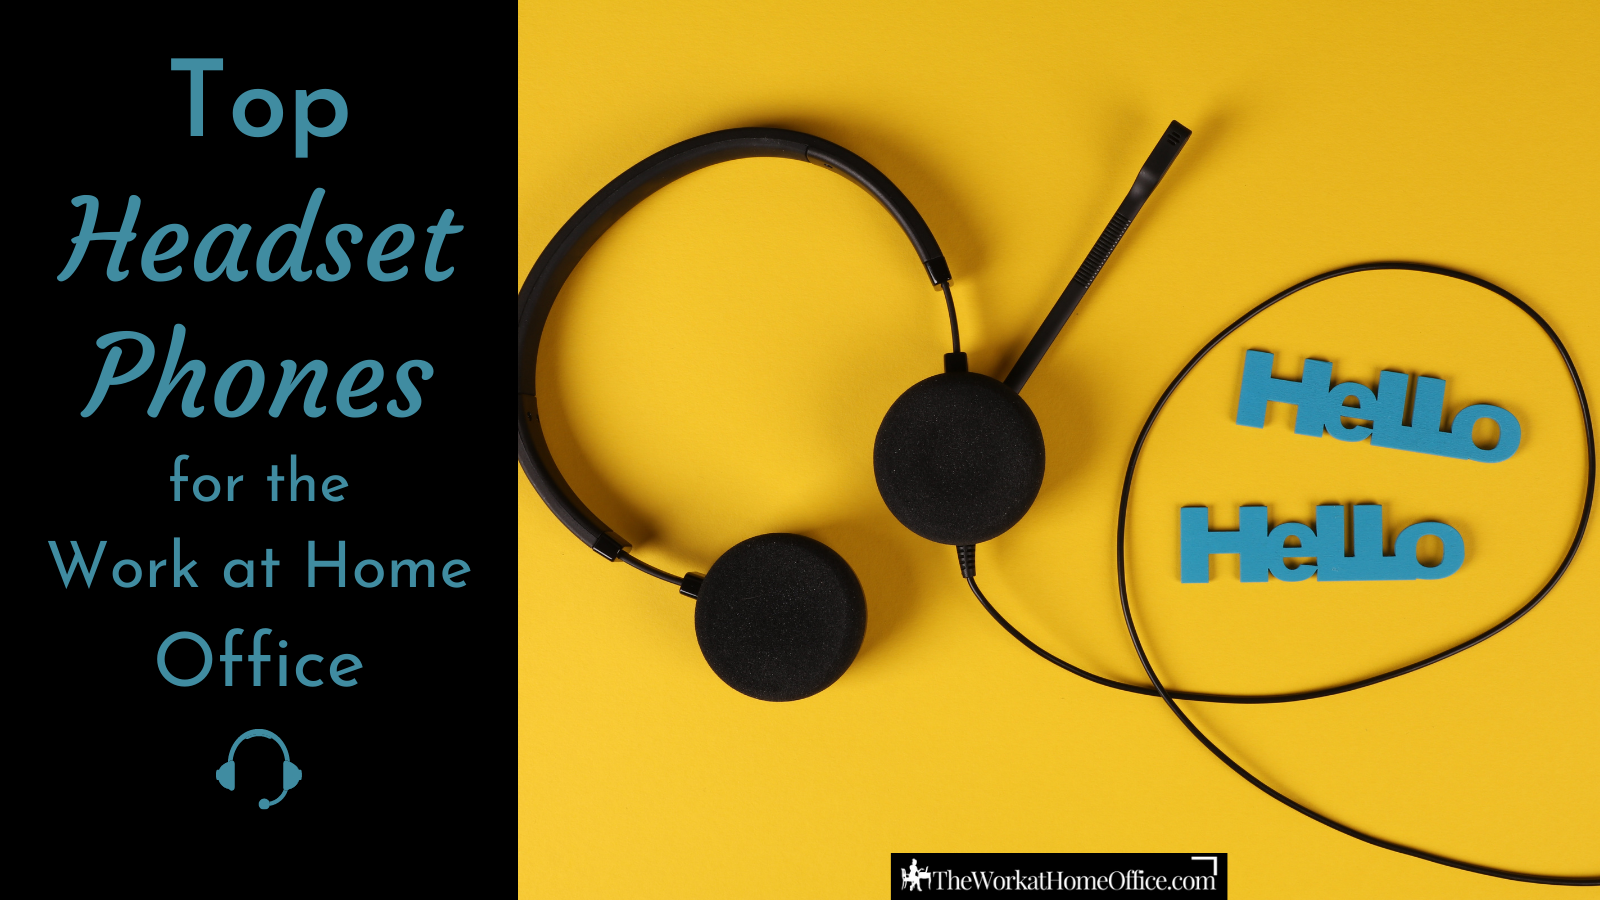 the-work-at-home-office-post-top-product-headset-phones